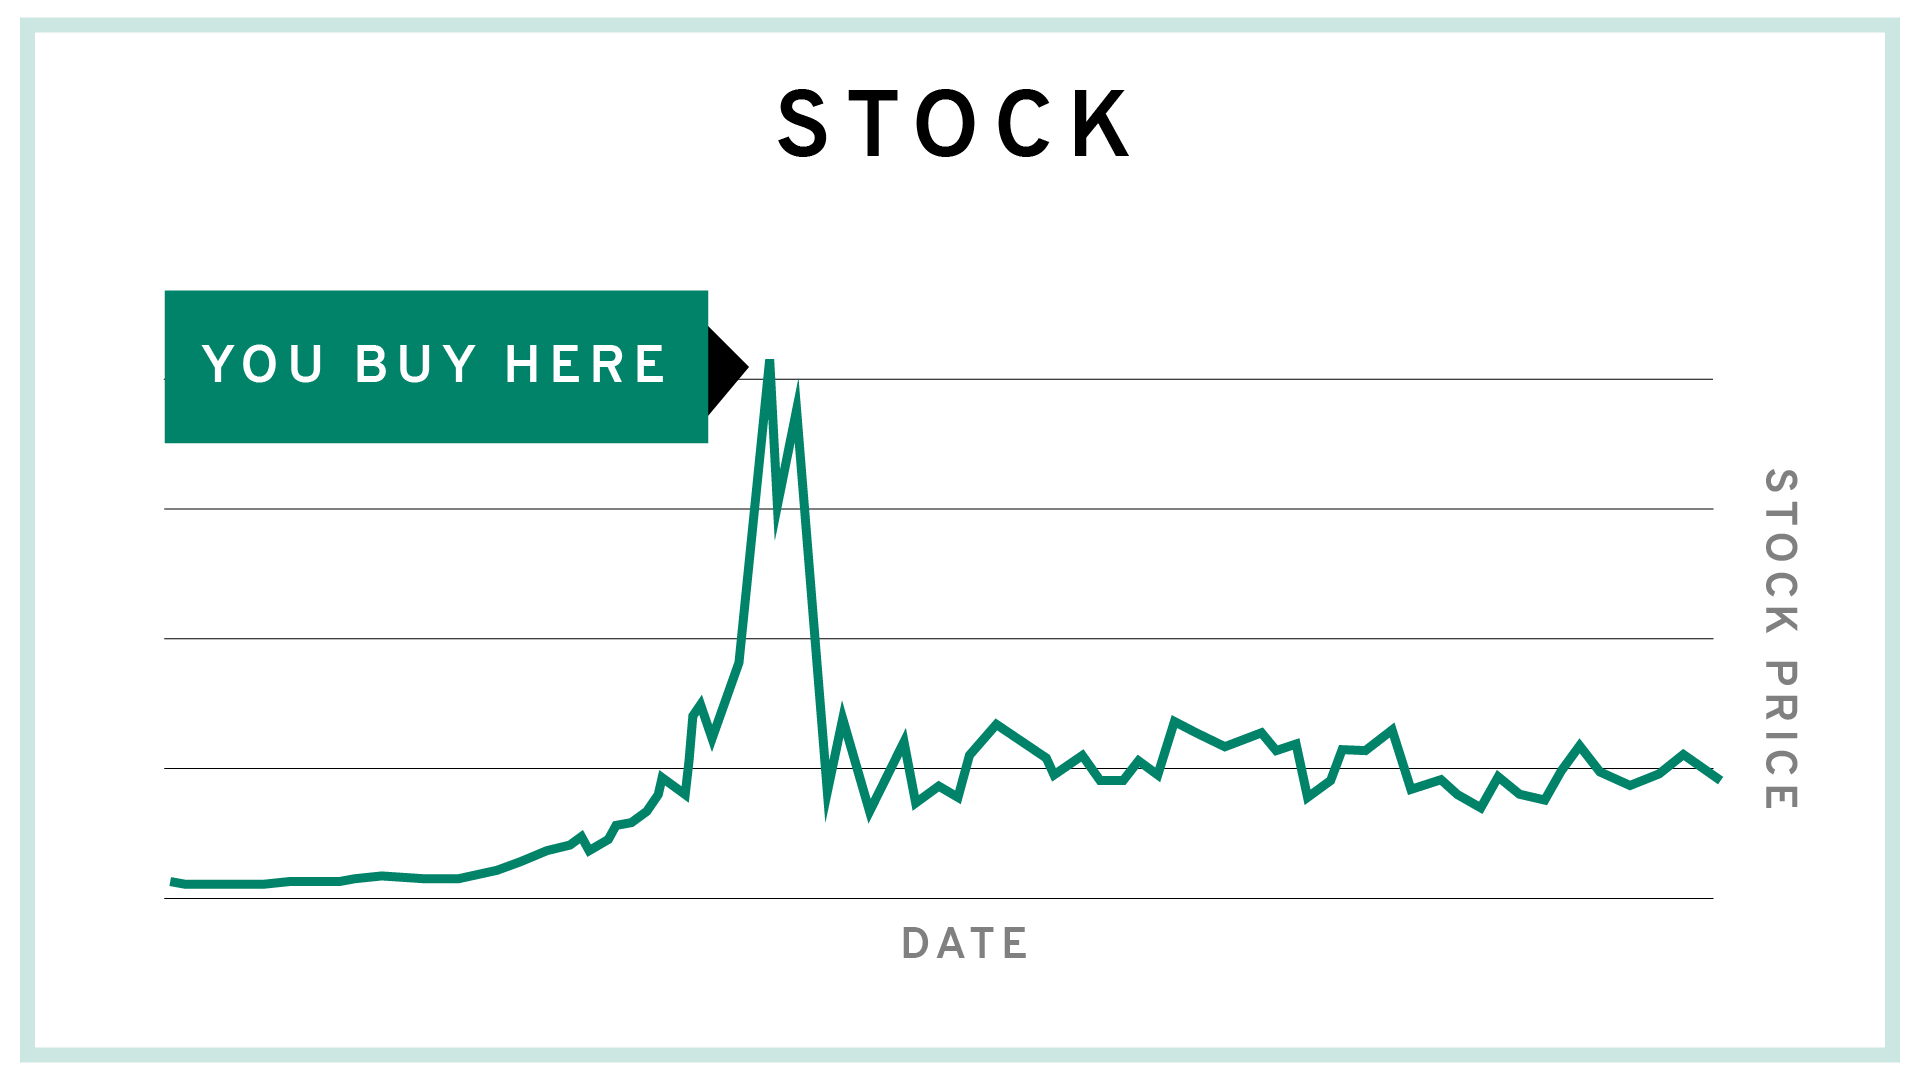 You Buy Here Chart